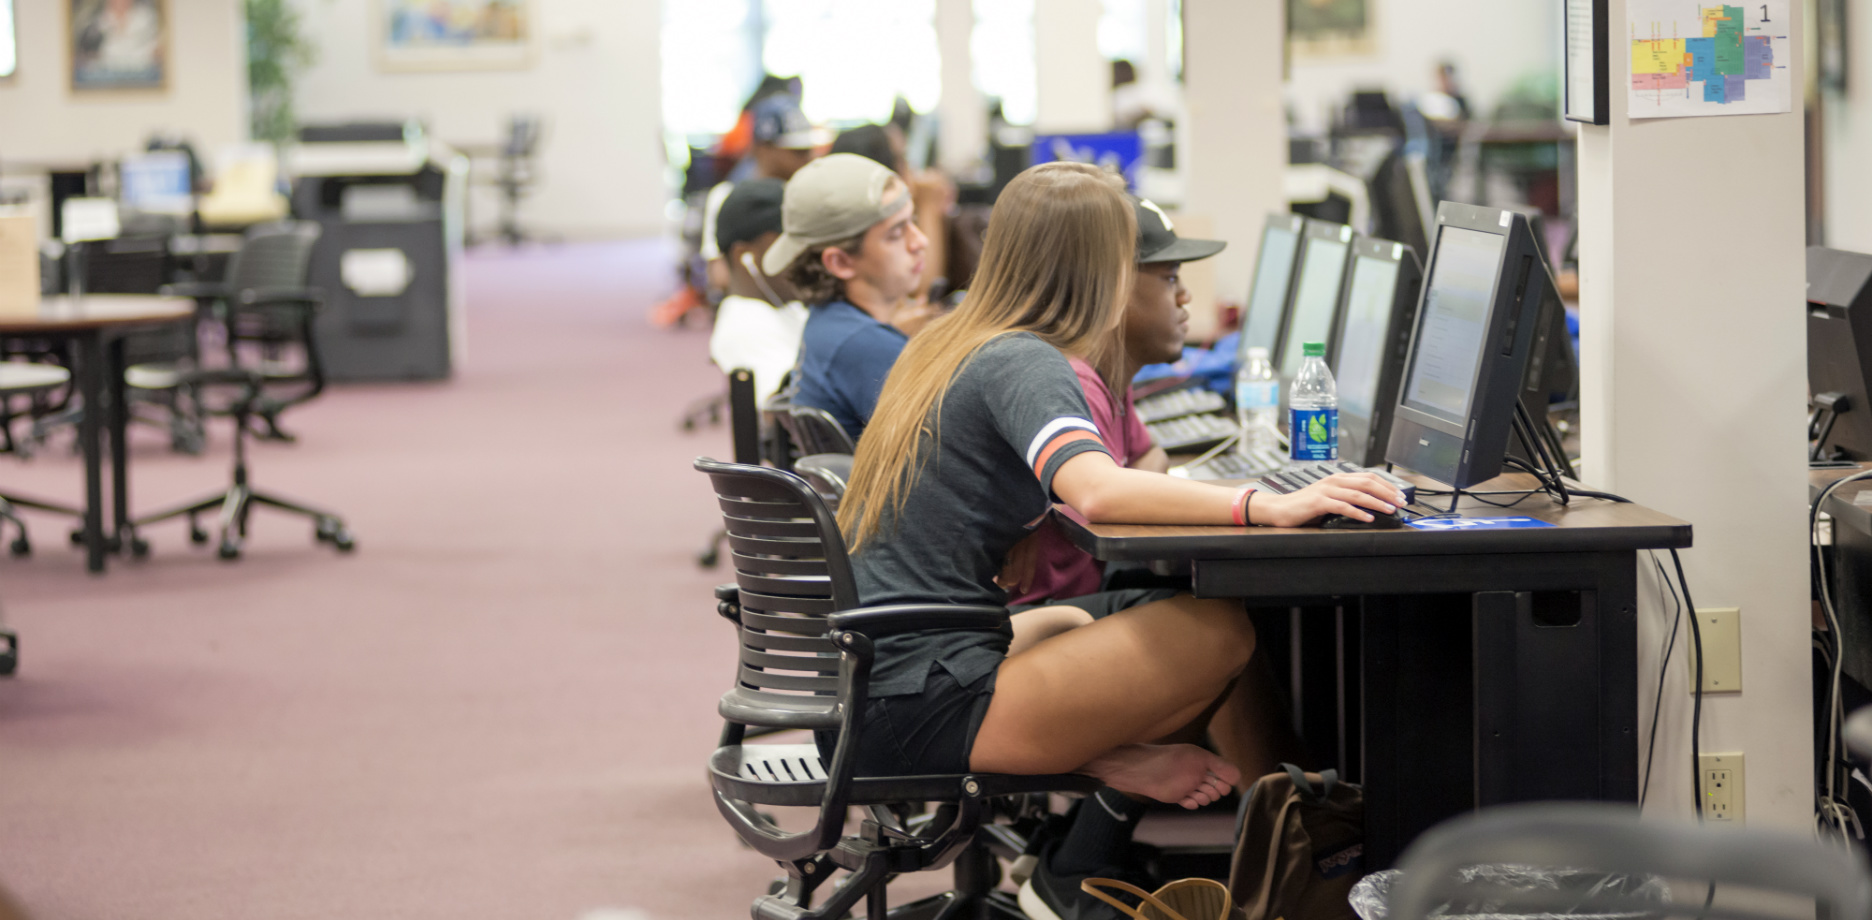 Students study at computers in Library